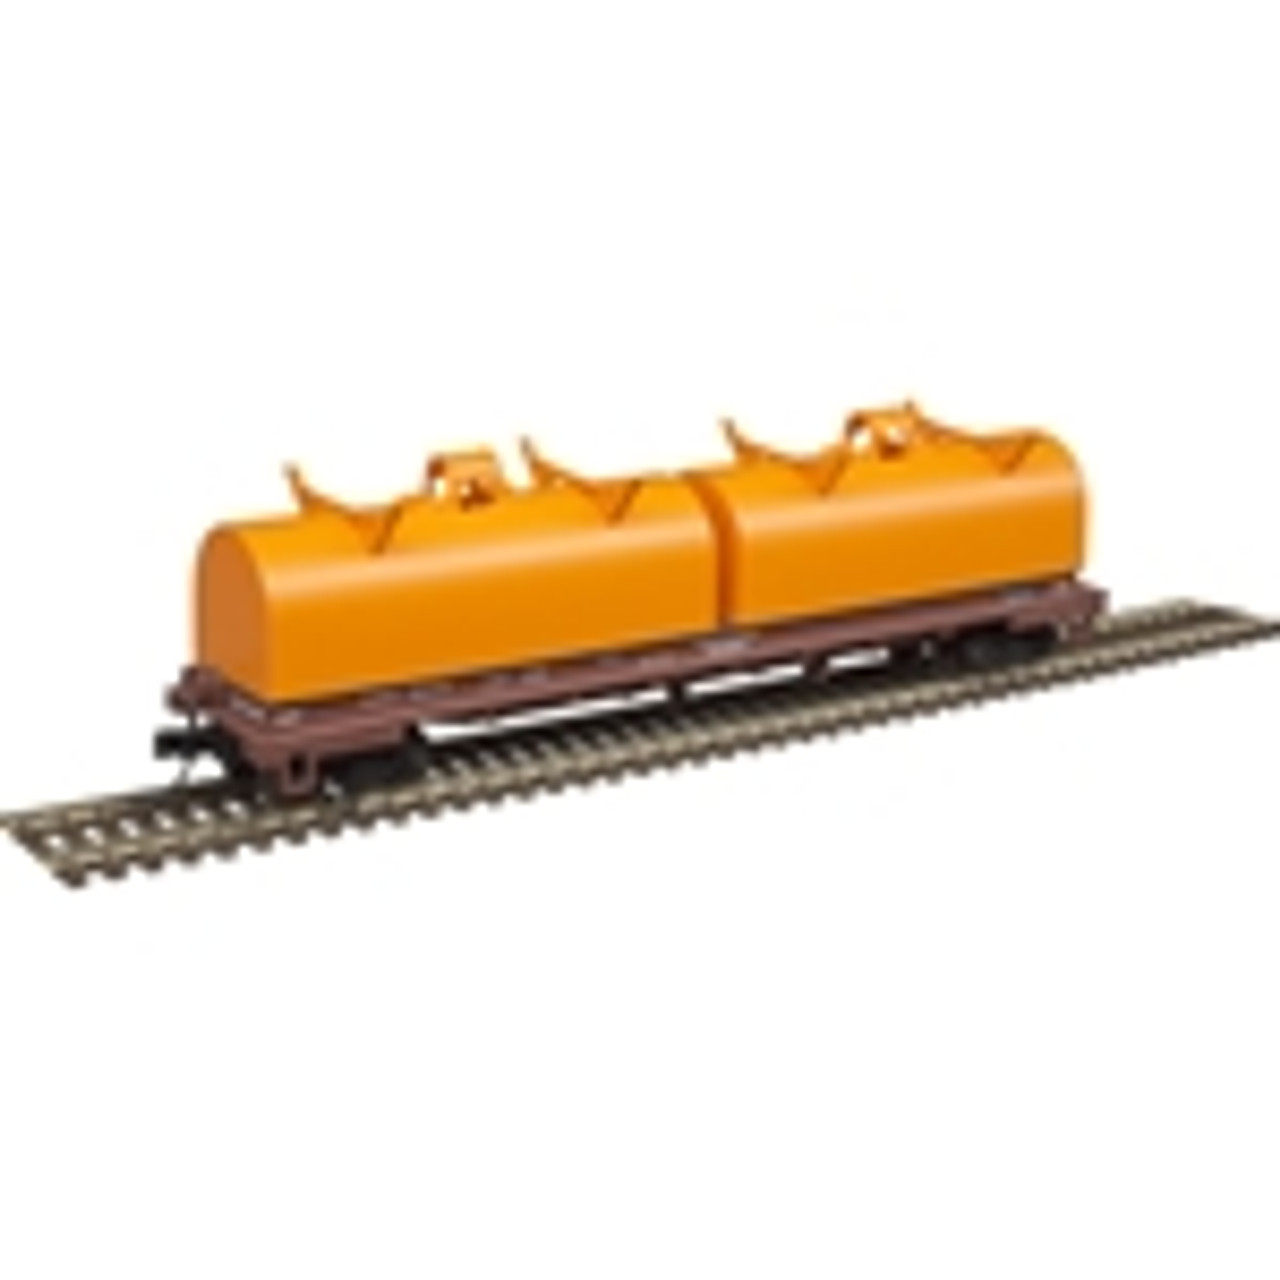 ATLAS 50004650 Cushion Coil Car - South Shore Freight (CSS) #1694 (SCALE=N) Part # 150-50004650